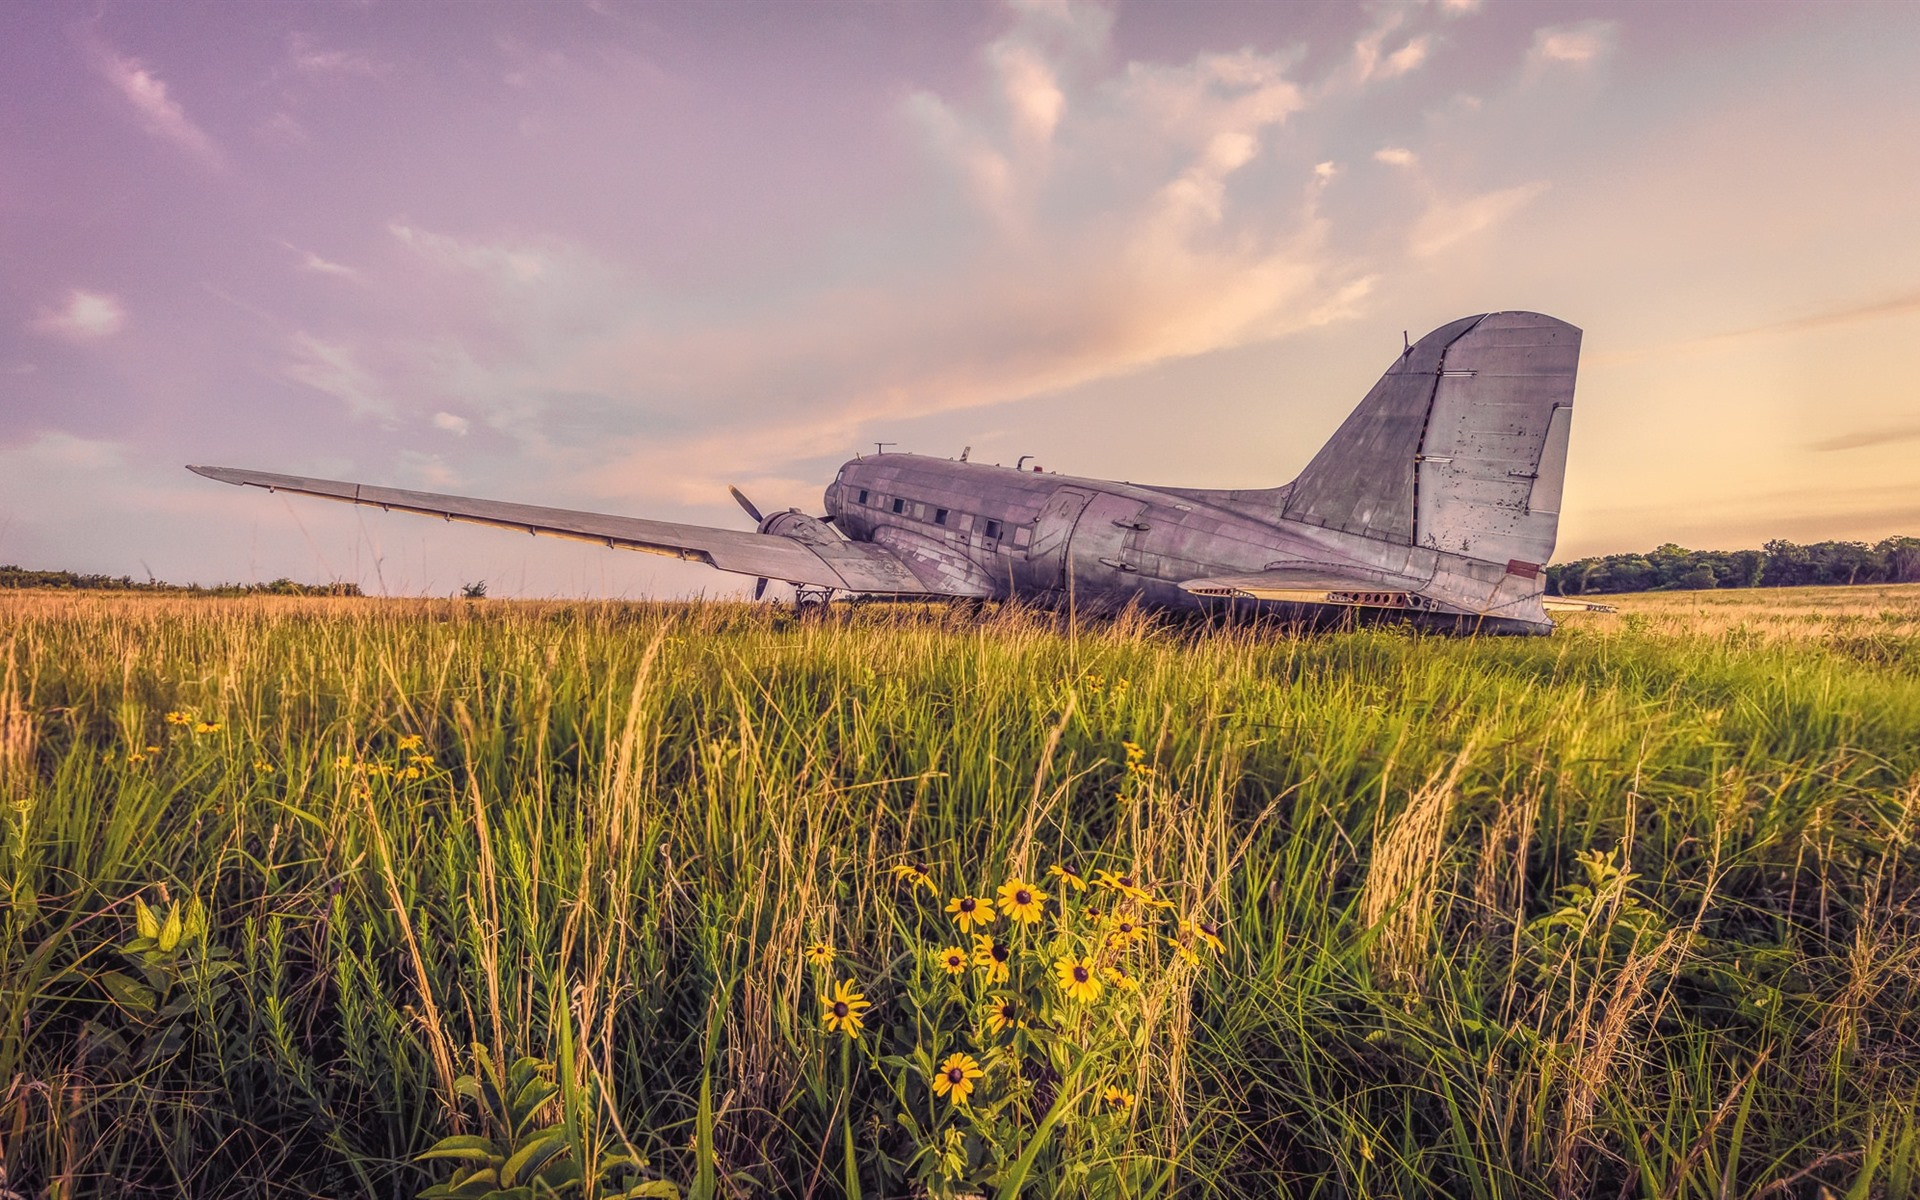 Wallpaper Old Plane Grass 1920x1200 Hd Picture Image